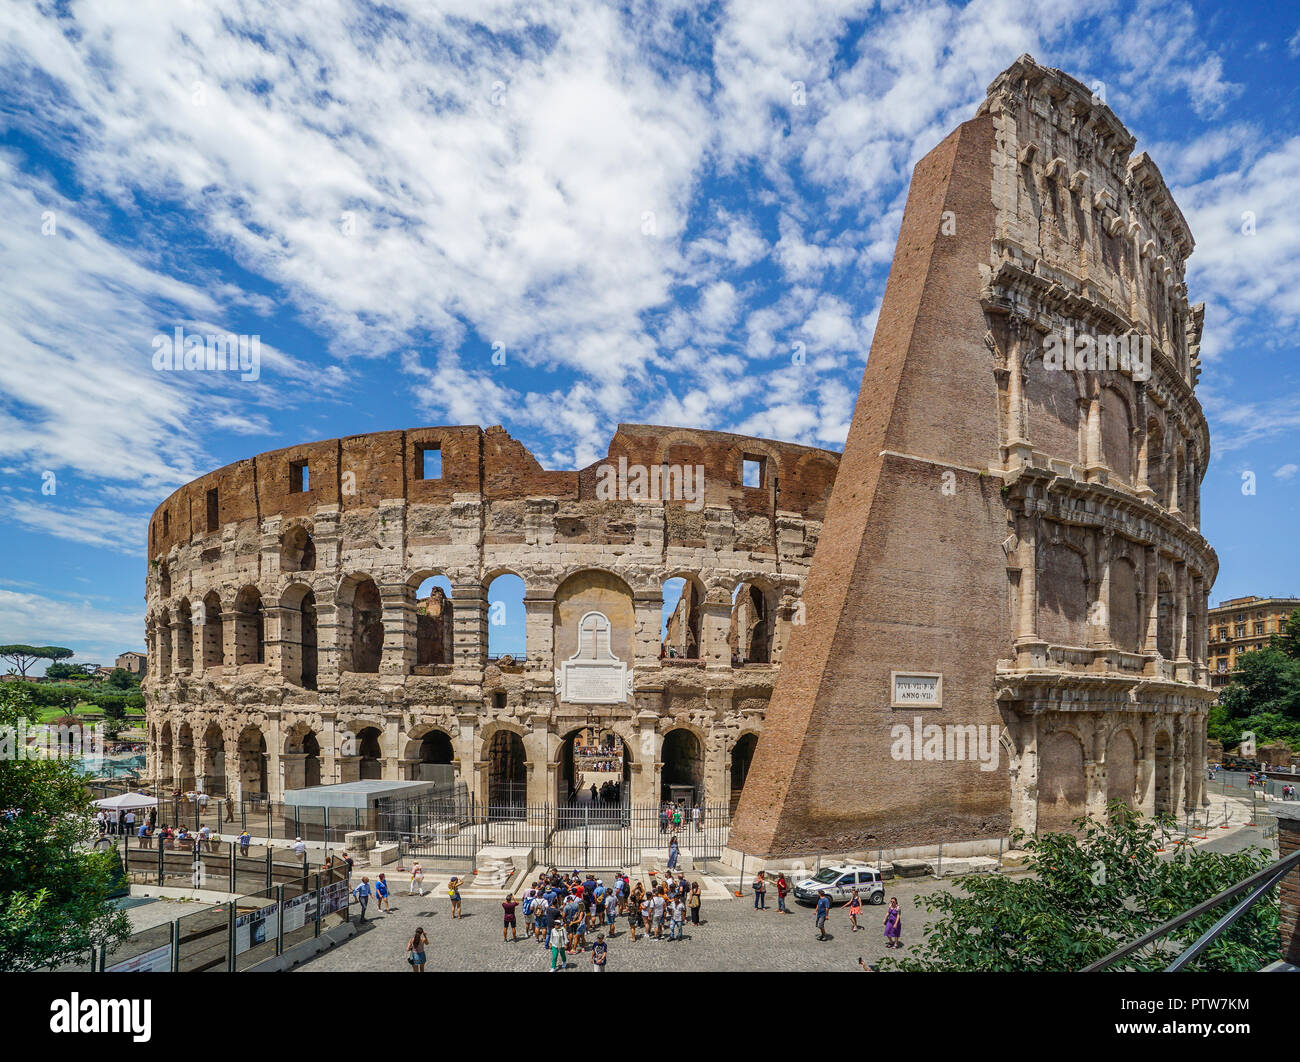 a massive brick spur supports the outer ring of the Colosseum, the largest Roman amphitheatre ever built and one of Rome's most iconic tourist attract - Stock Image